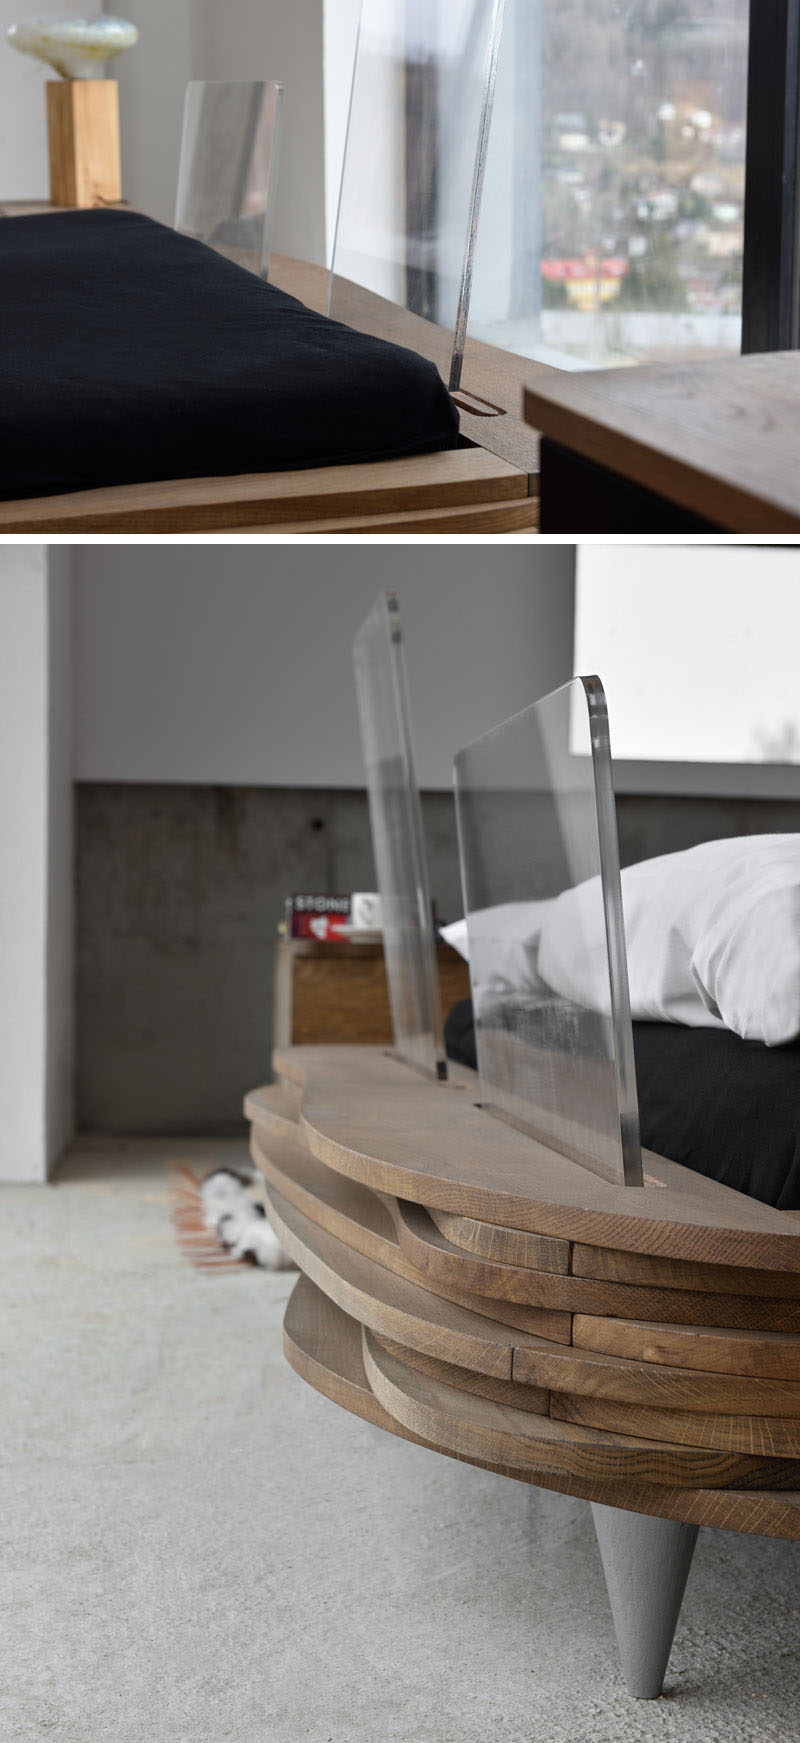 ORGANIQUE is a modern wood bed by furniture design brand Gie El, and it's made from wavy layers of natural oak wood with a transparent headboard. #ModernBed #WoodBedFrame